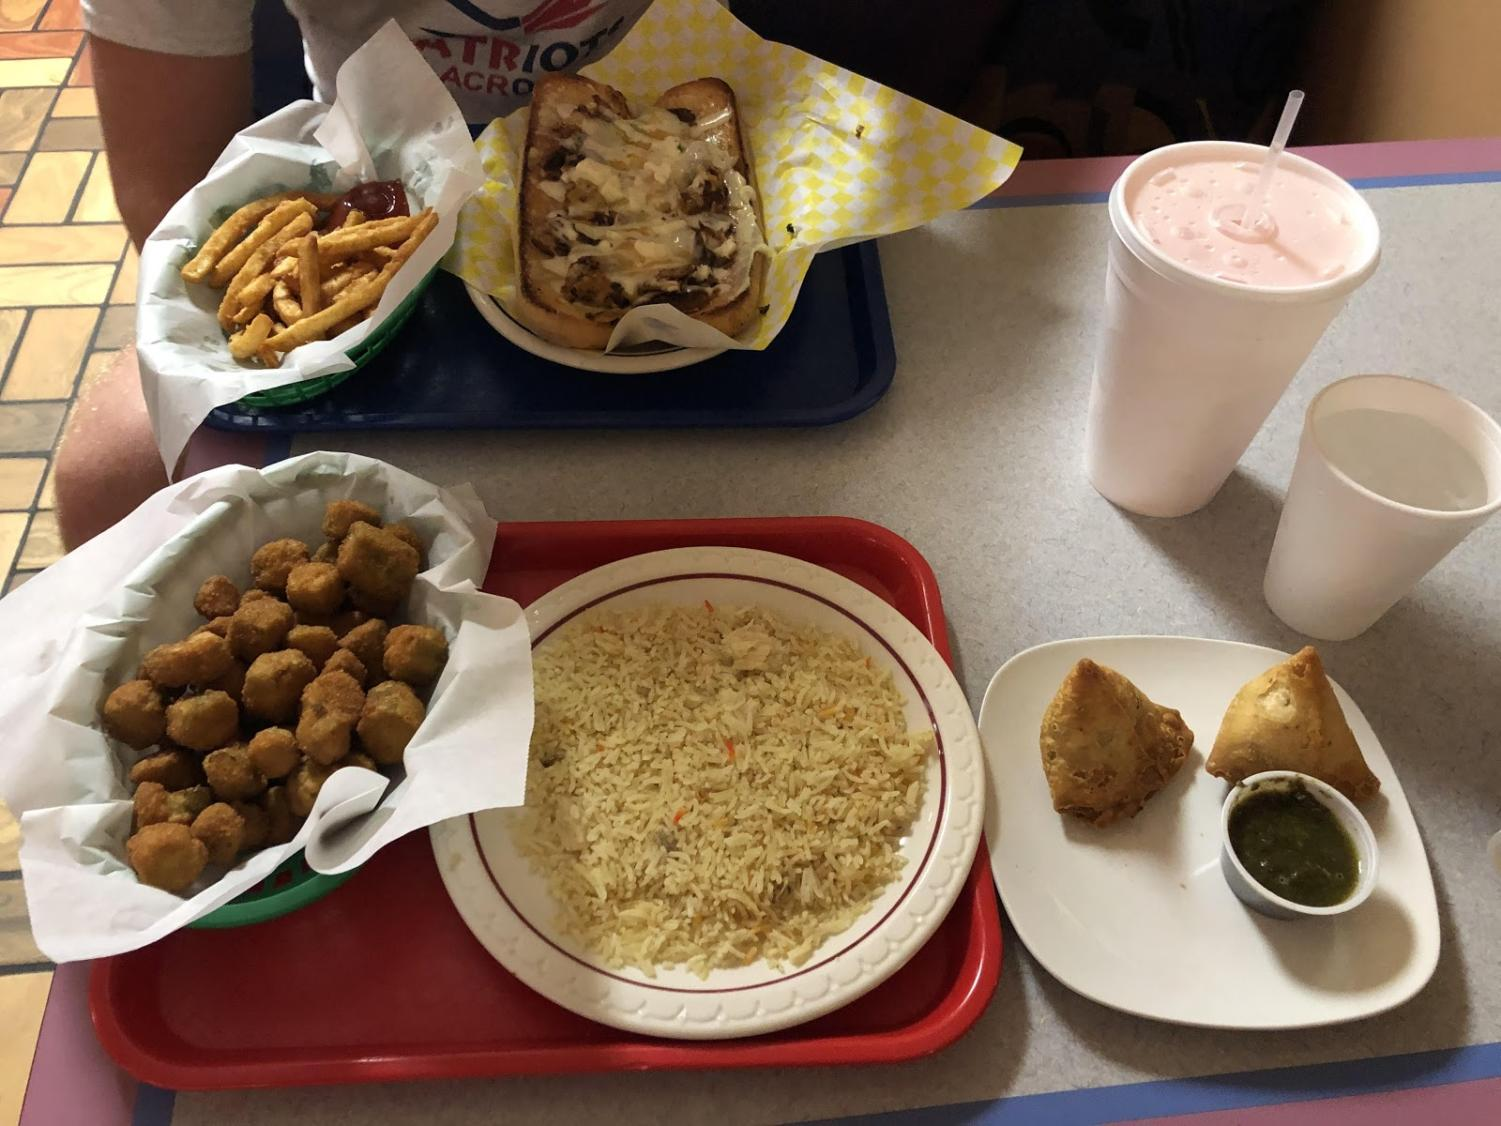 Here is a sampling of some of the food you can order at Taco and Pita Grill.